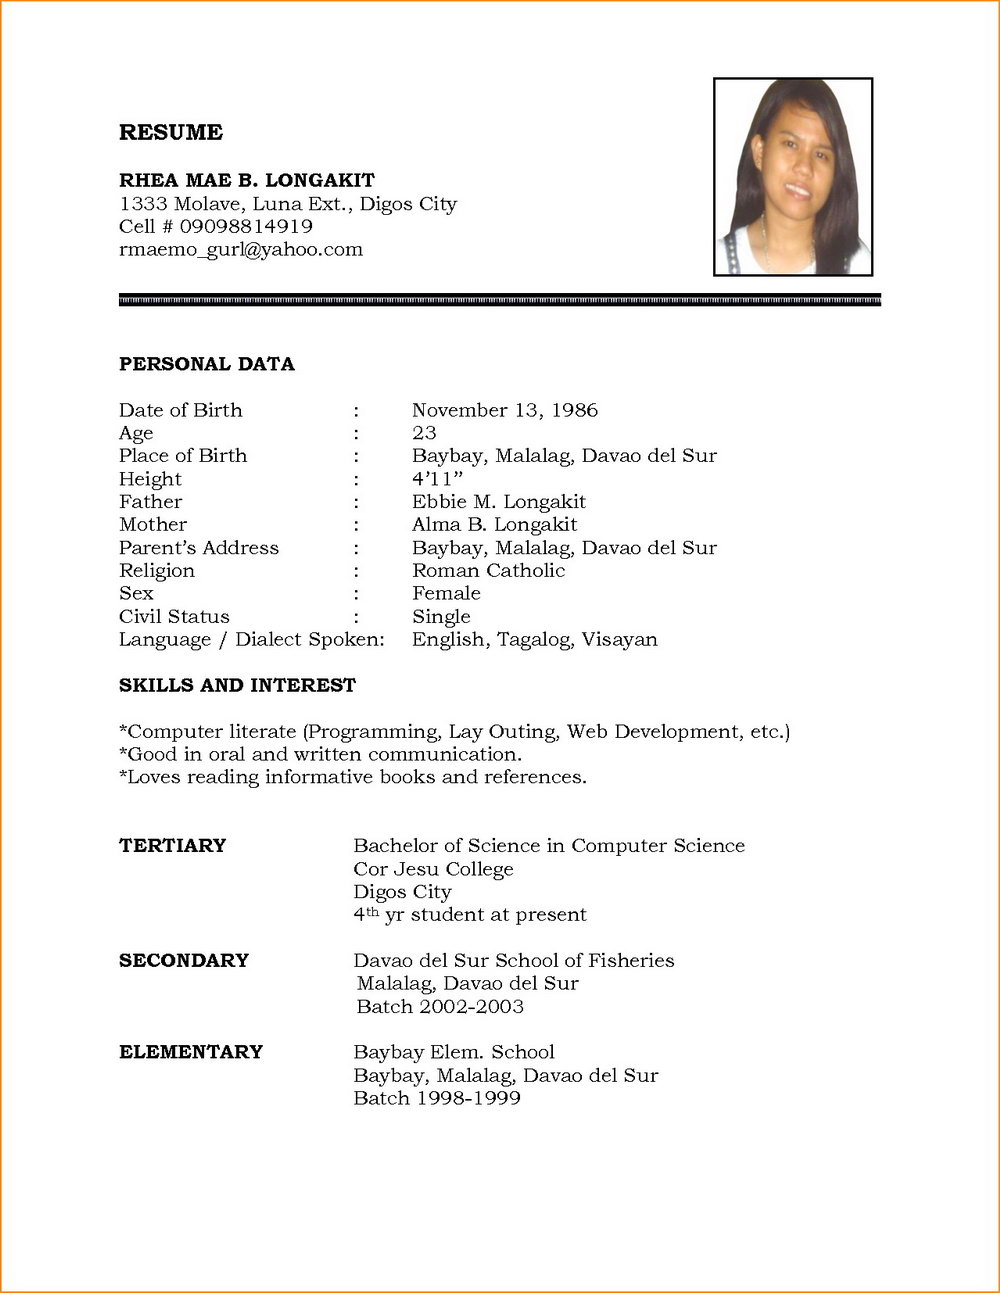 Samples Of Simple Resumes